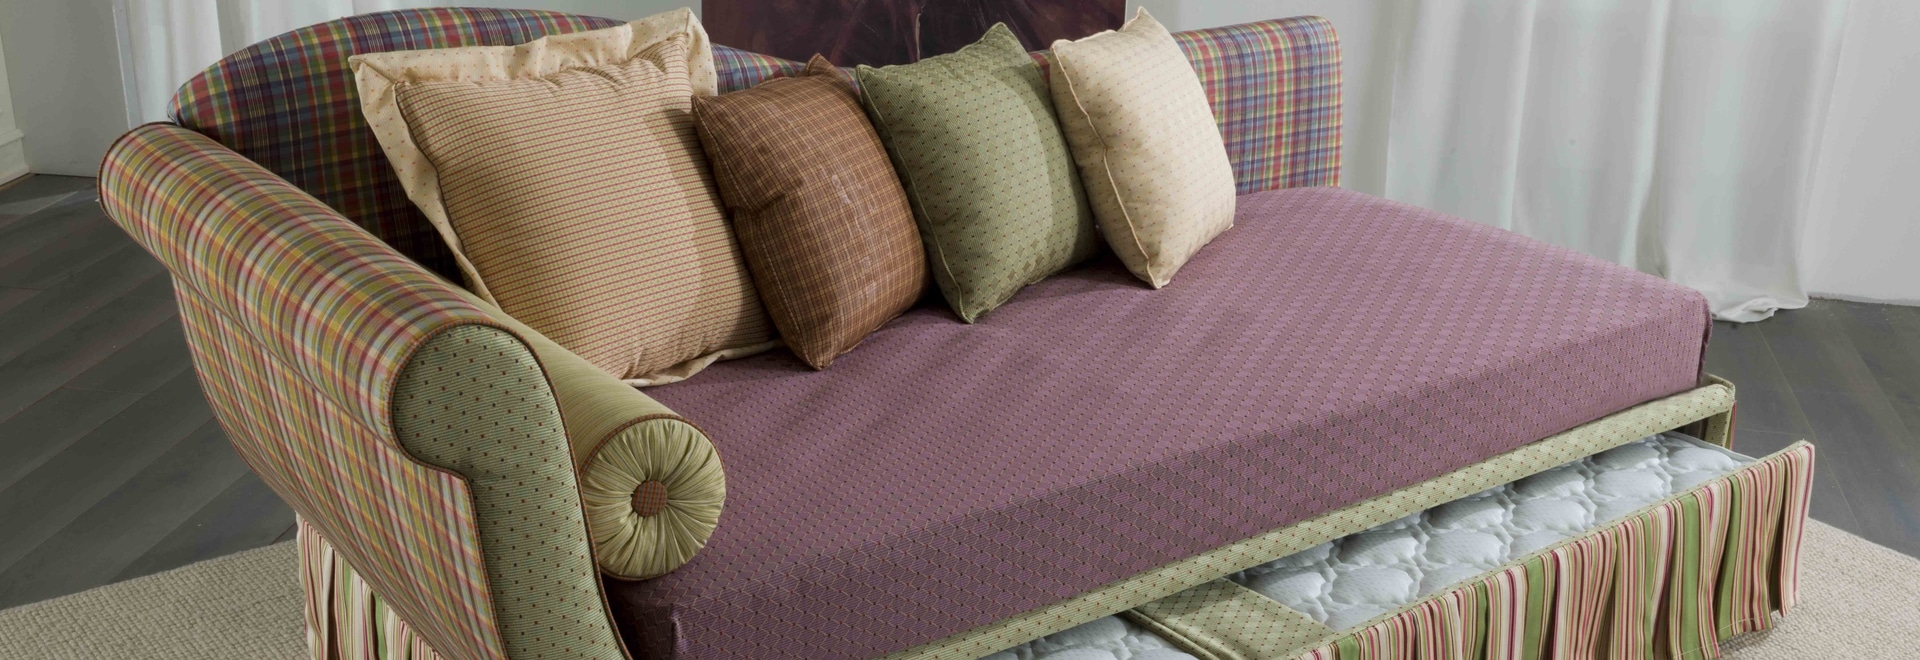 Trundle bed Baltimore